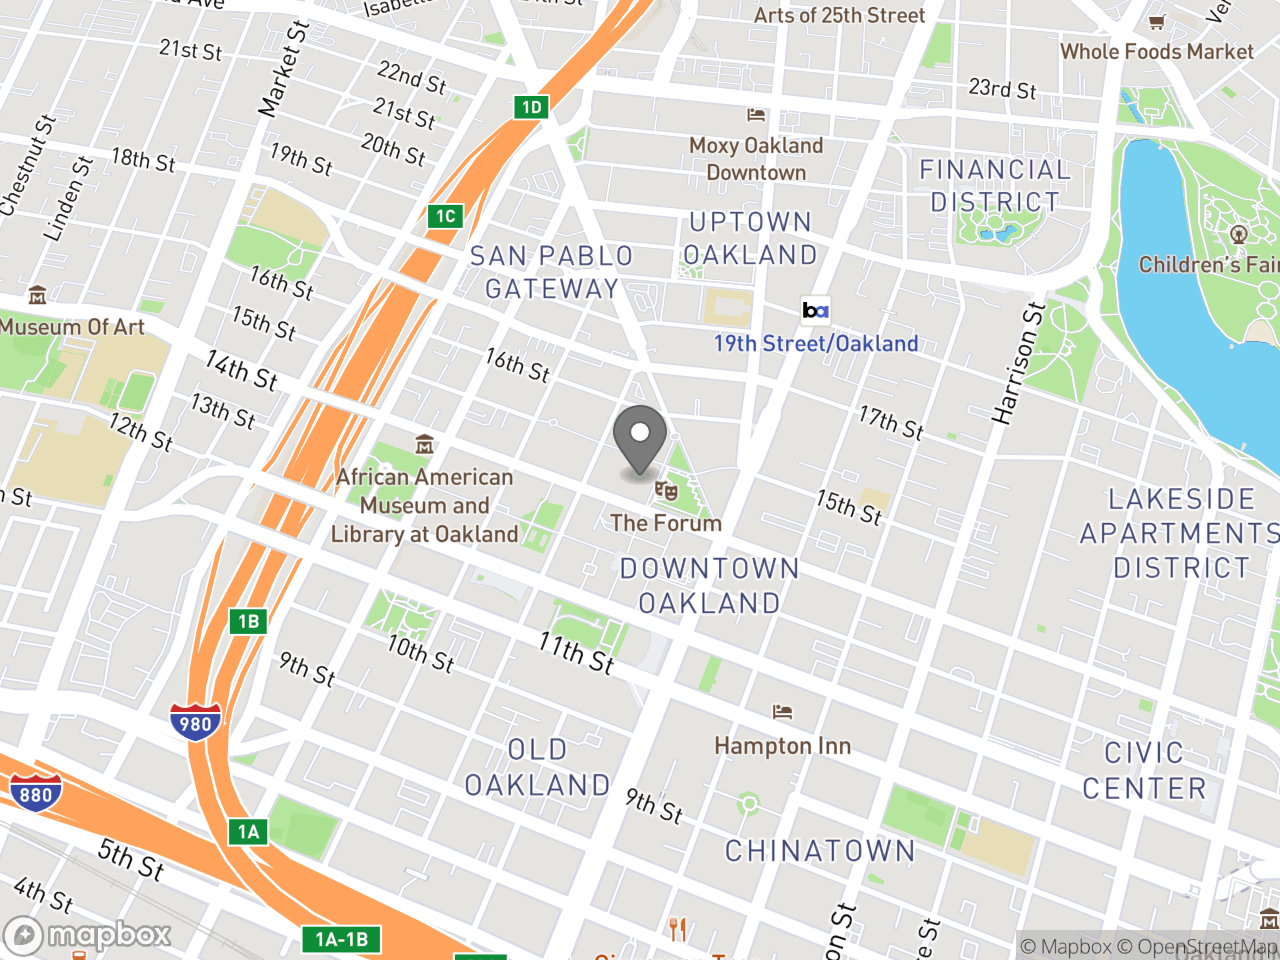 Map location for Police and Fire Retirement Board, located at 1 Frank H Ogawa Plaza in Oakland, CA 94612